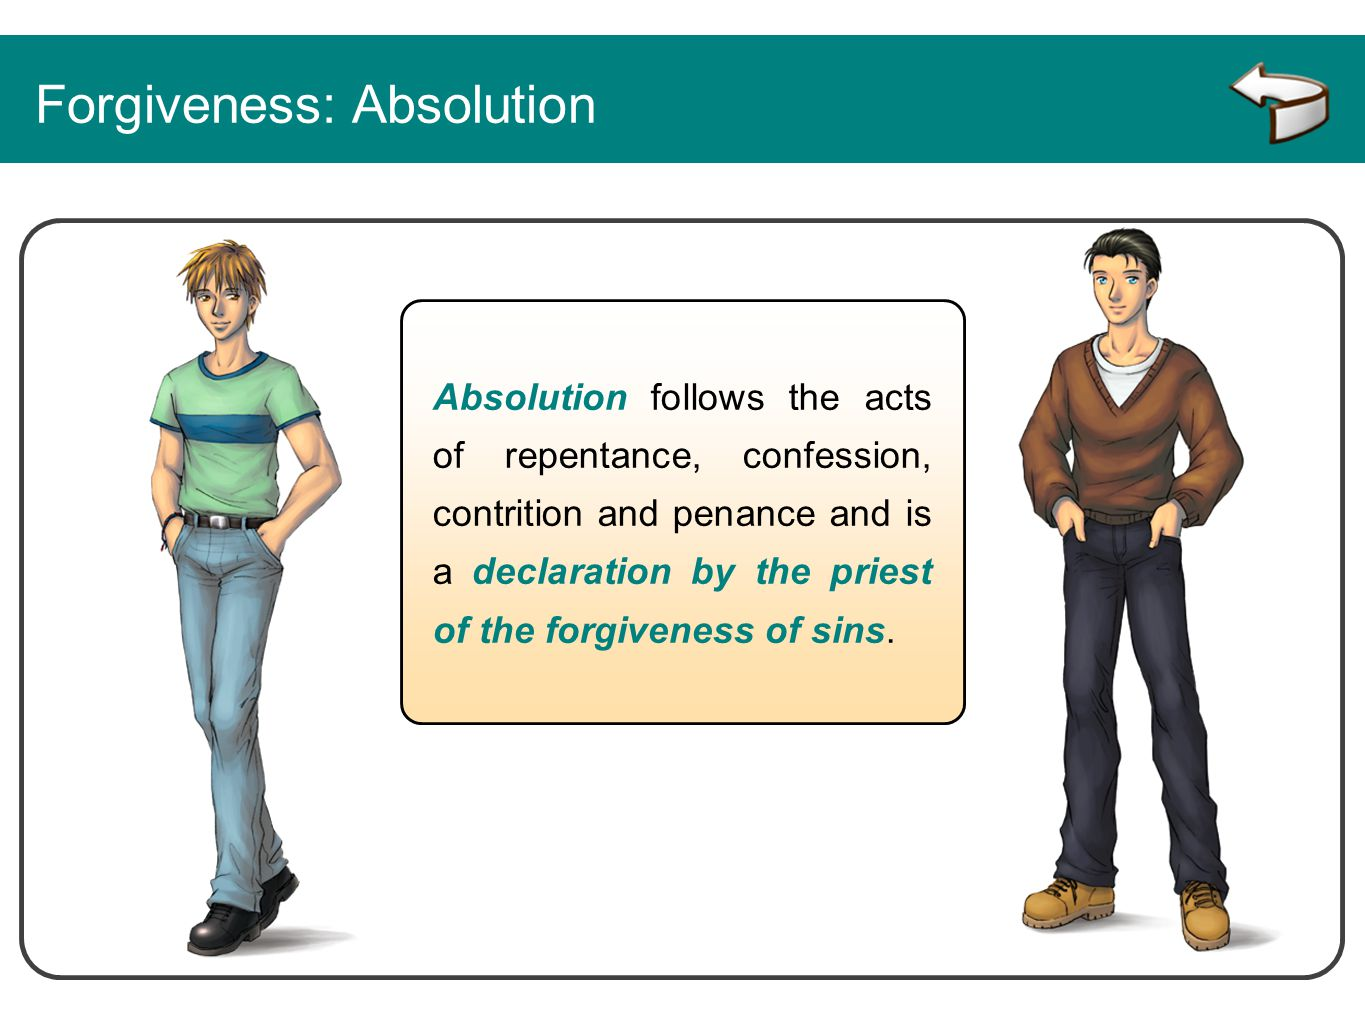 Forgiveness: Absolution